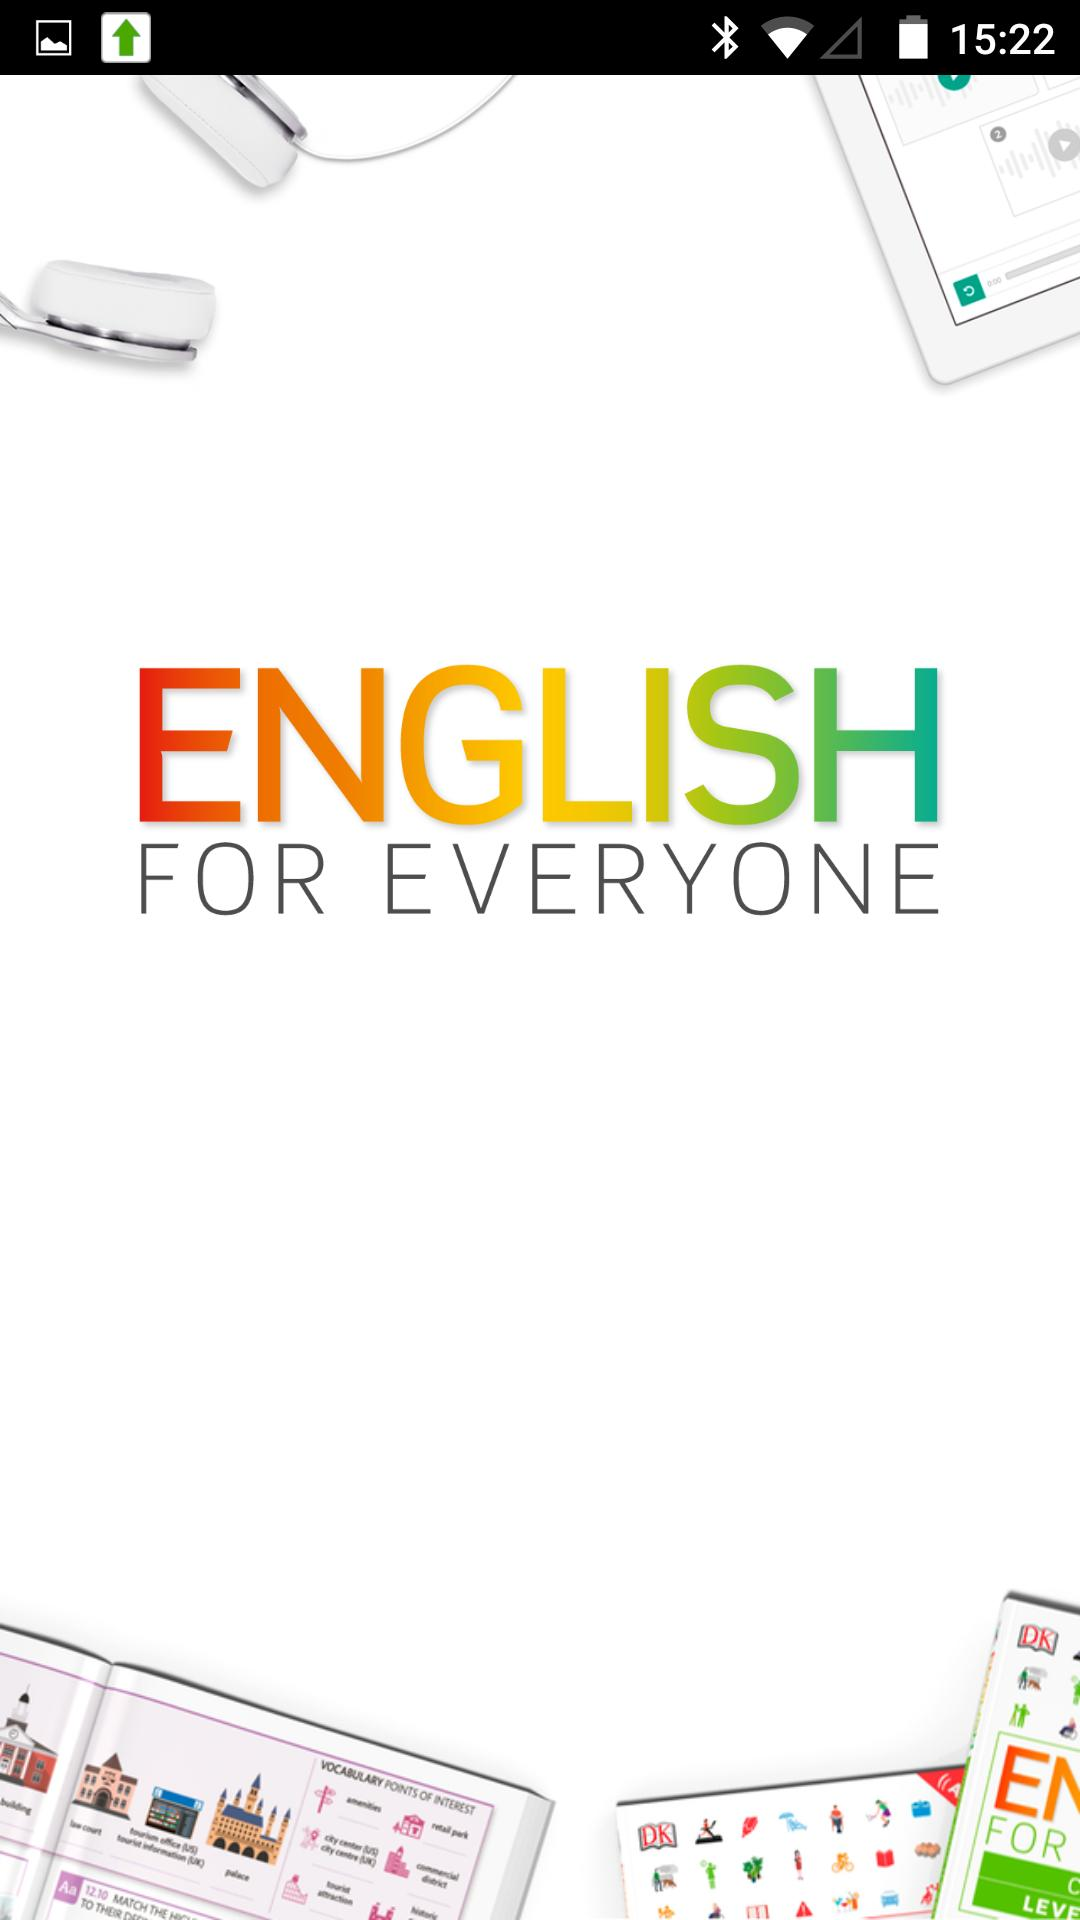 English for Everyone for Android - APK Download